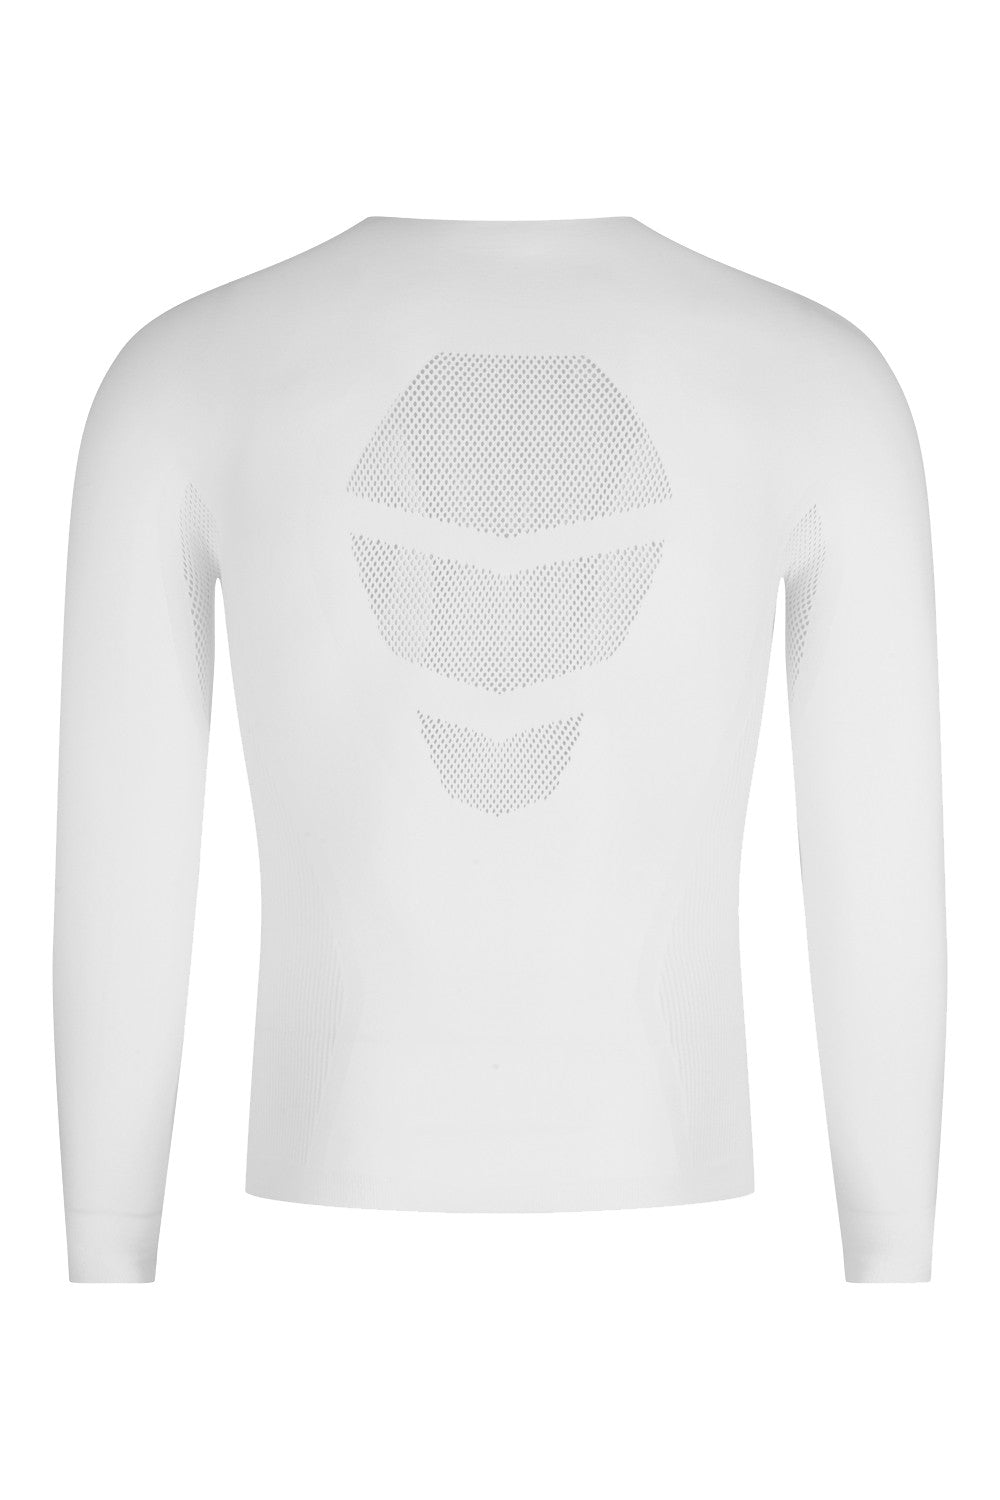 mens-drynamo-technology-cycle-long-sleeve-base-layer-in-white